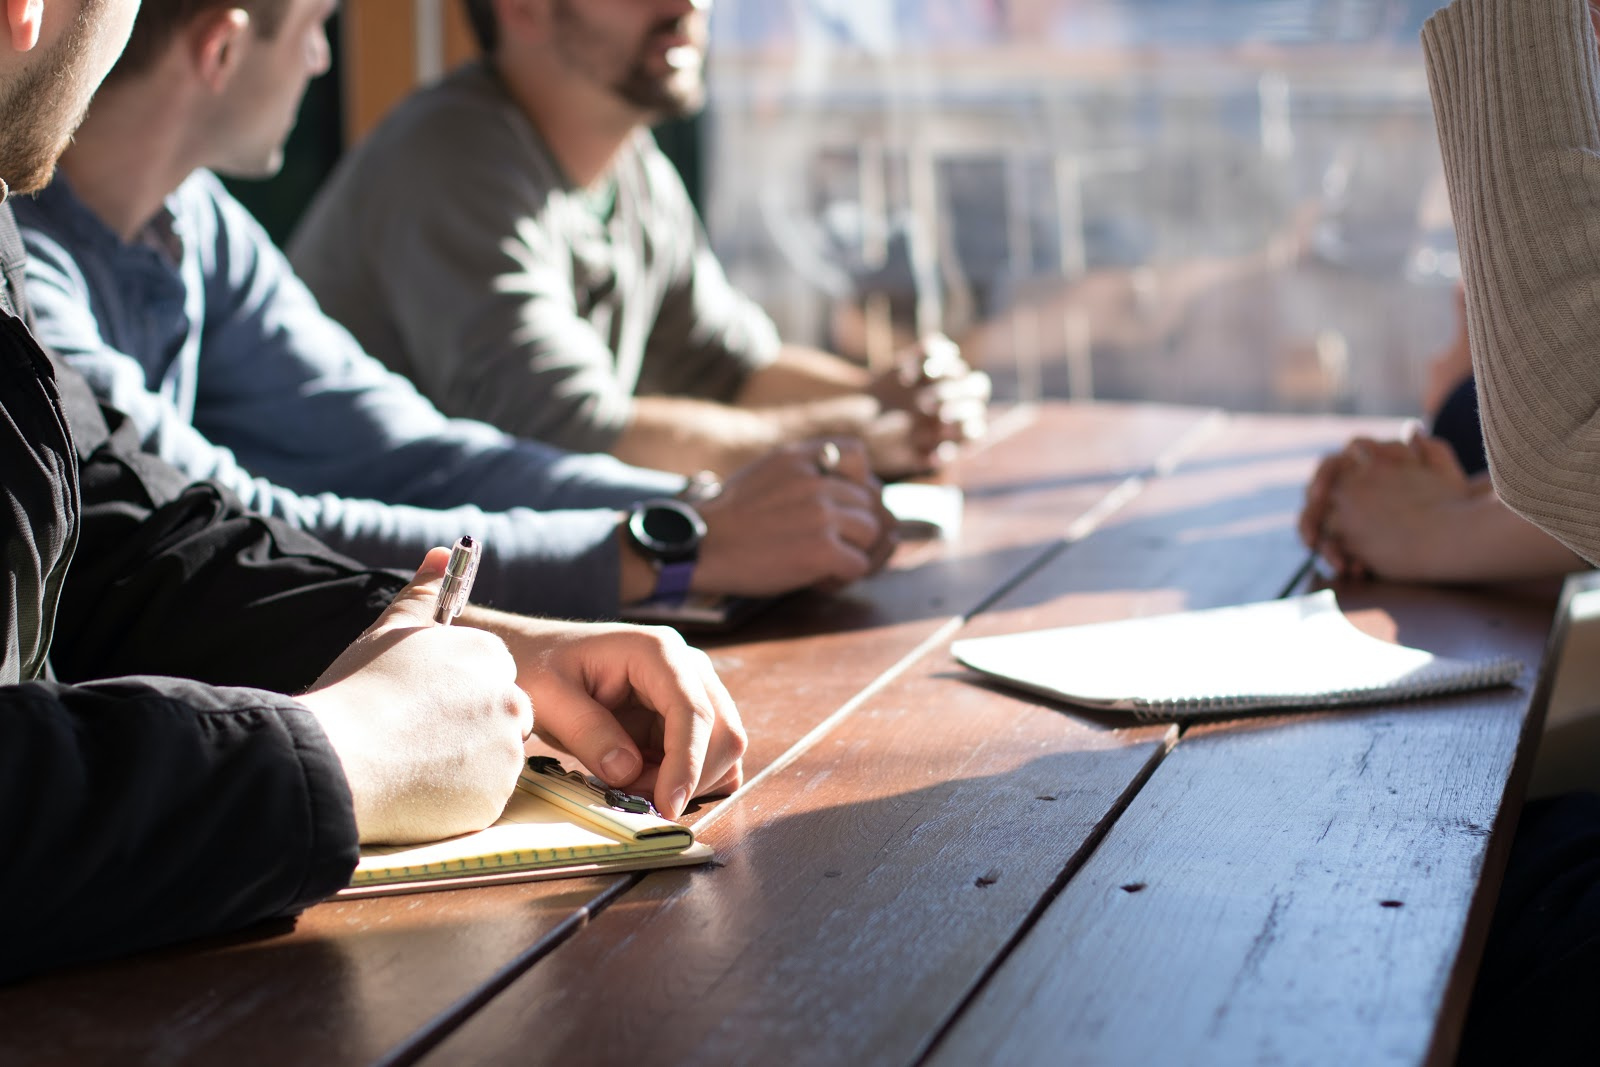 A group of people sitting at a desk in a meeting